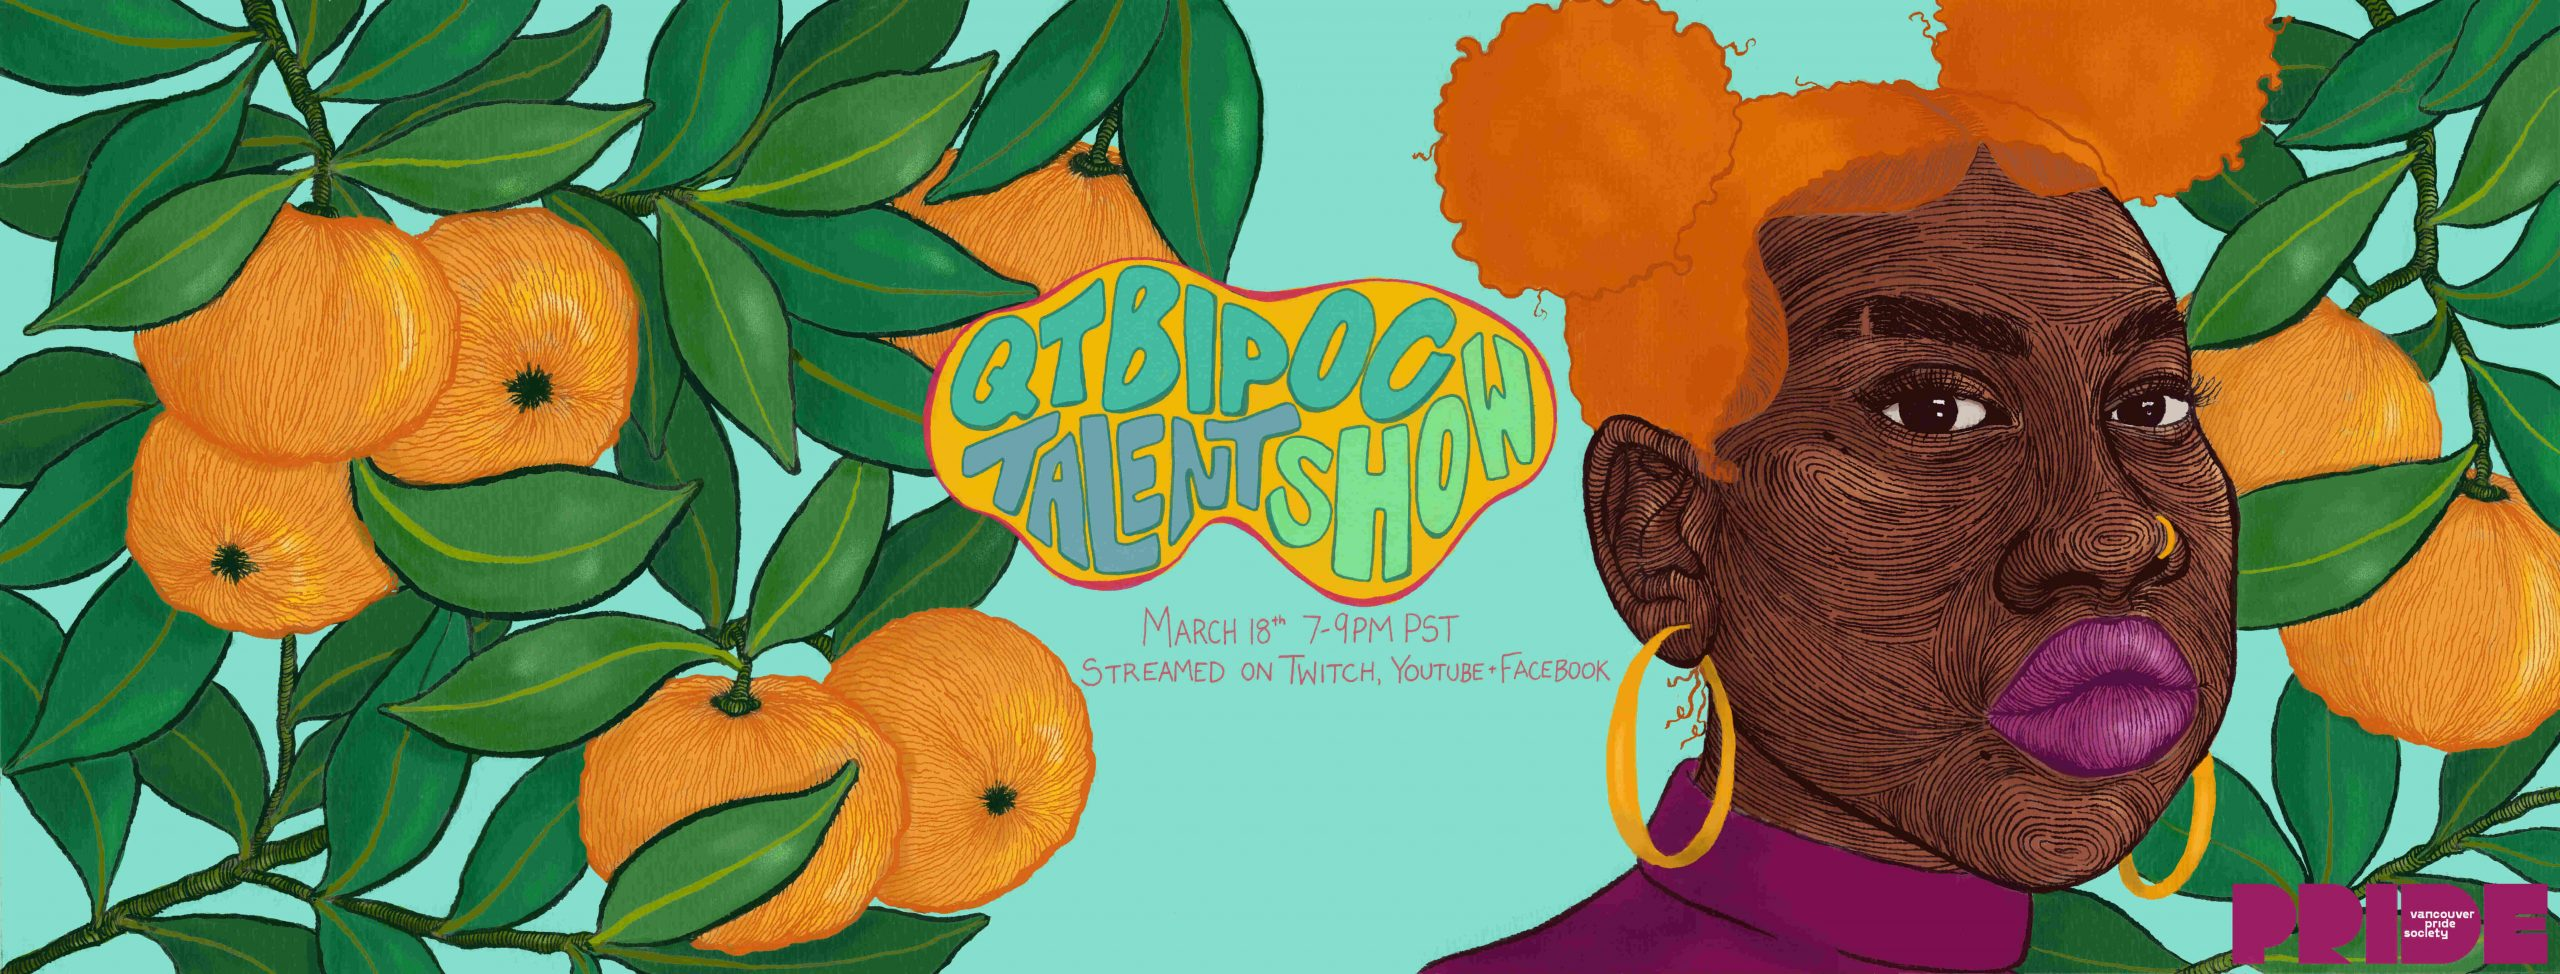 "[Event Cover Image Description: A light-blue graphic is covered in illustrations of orange tree branches, surrounding a person with orange hair in two buns, gold hoops and a purple turtleneck. Wavy blue illustrated letters inside a yellow bubble reads, ""QTBIPOC Talent Show."" Light-pink text below reads, ""March 18th 7-9PM PST. Streamed on Twitch, YouTube + Facebook."" A purple VPS logo is in the bottom-right corner.]"